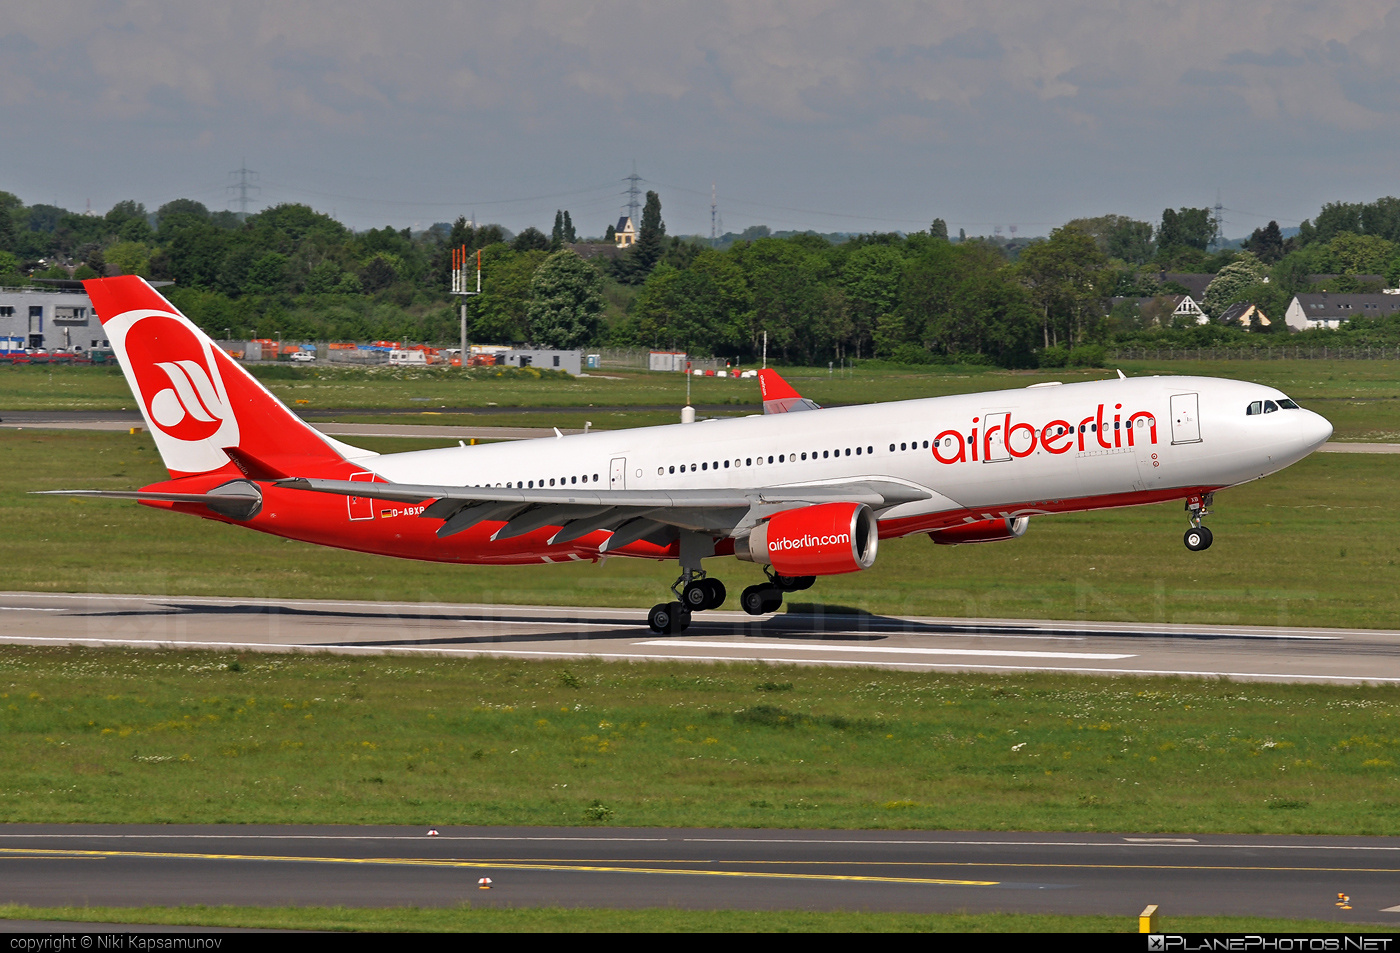 Airbus A330-223 - D-ABXB operated by Air Berlin #a330 #a330family #airberlin #airbus #airbus330